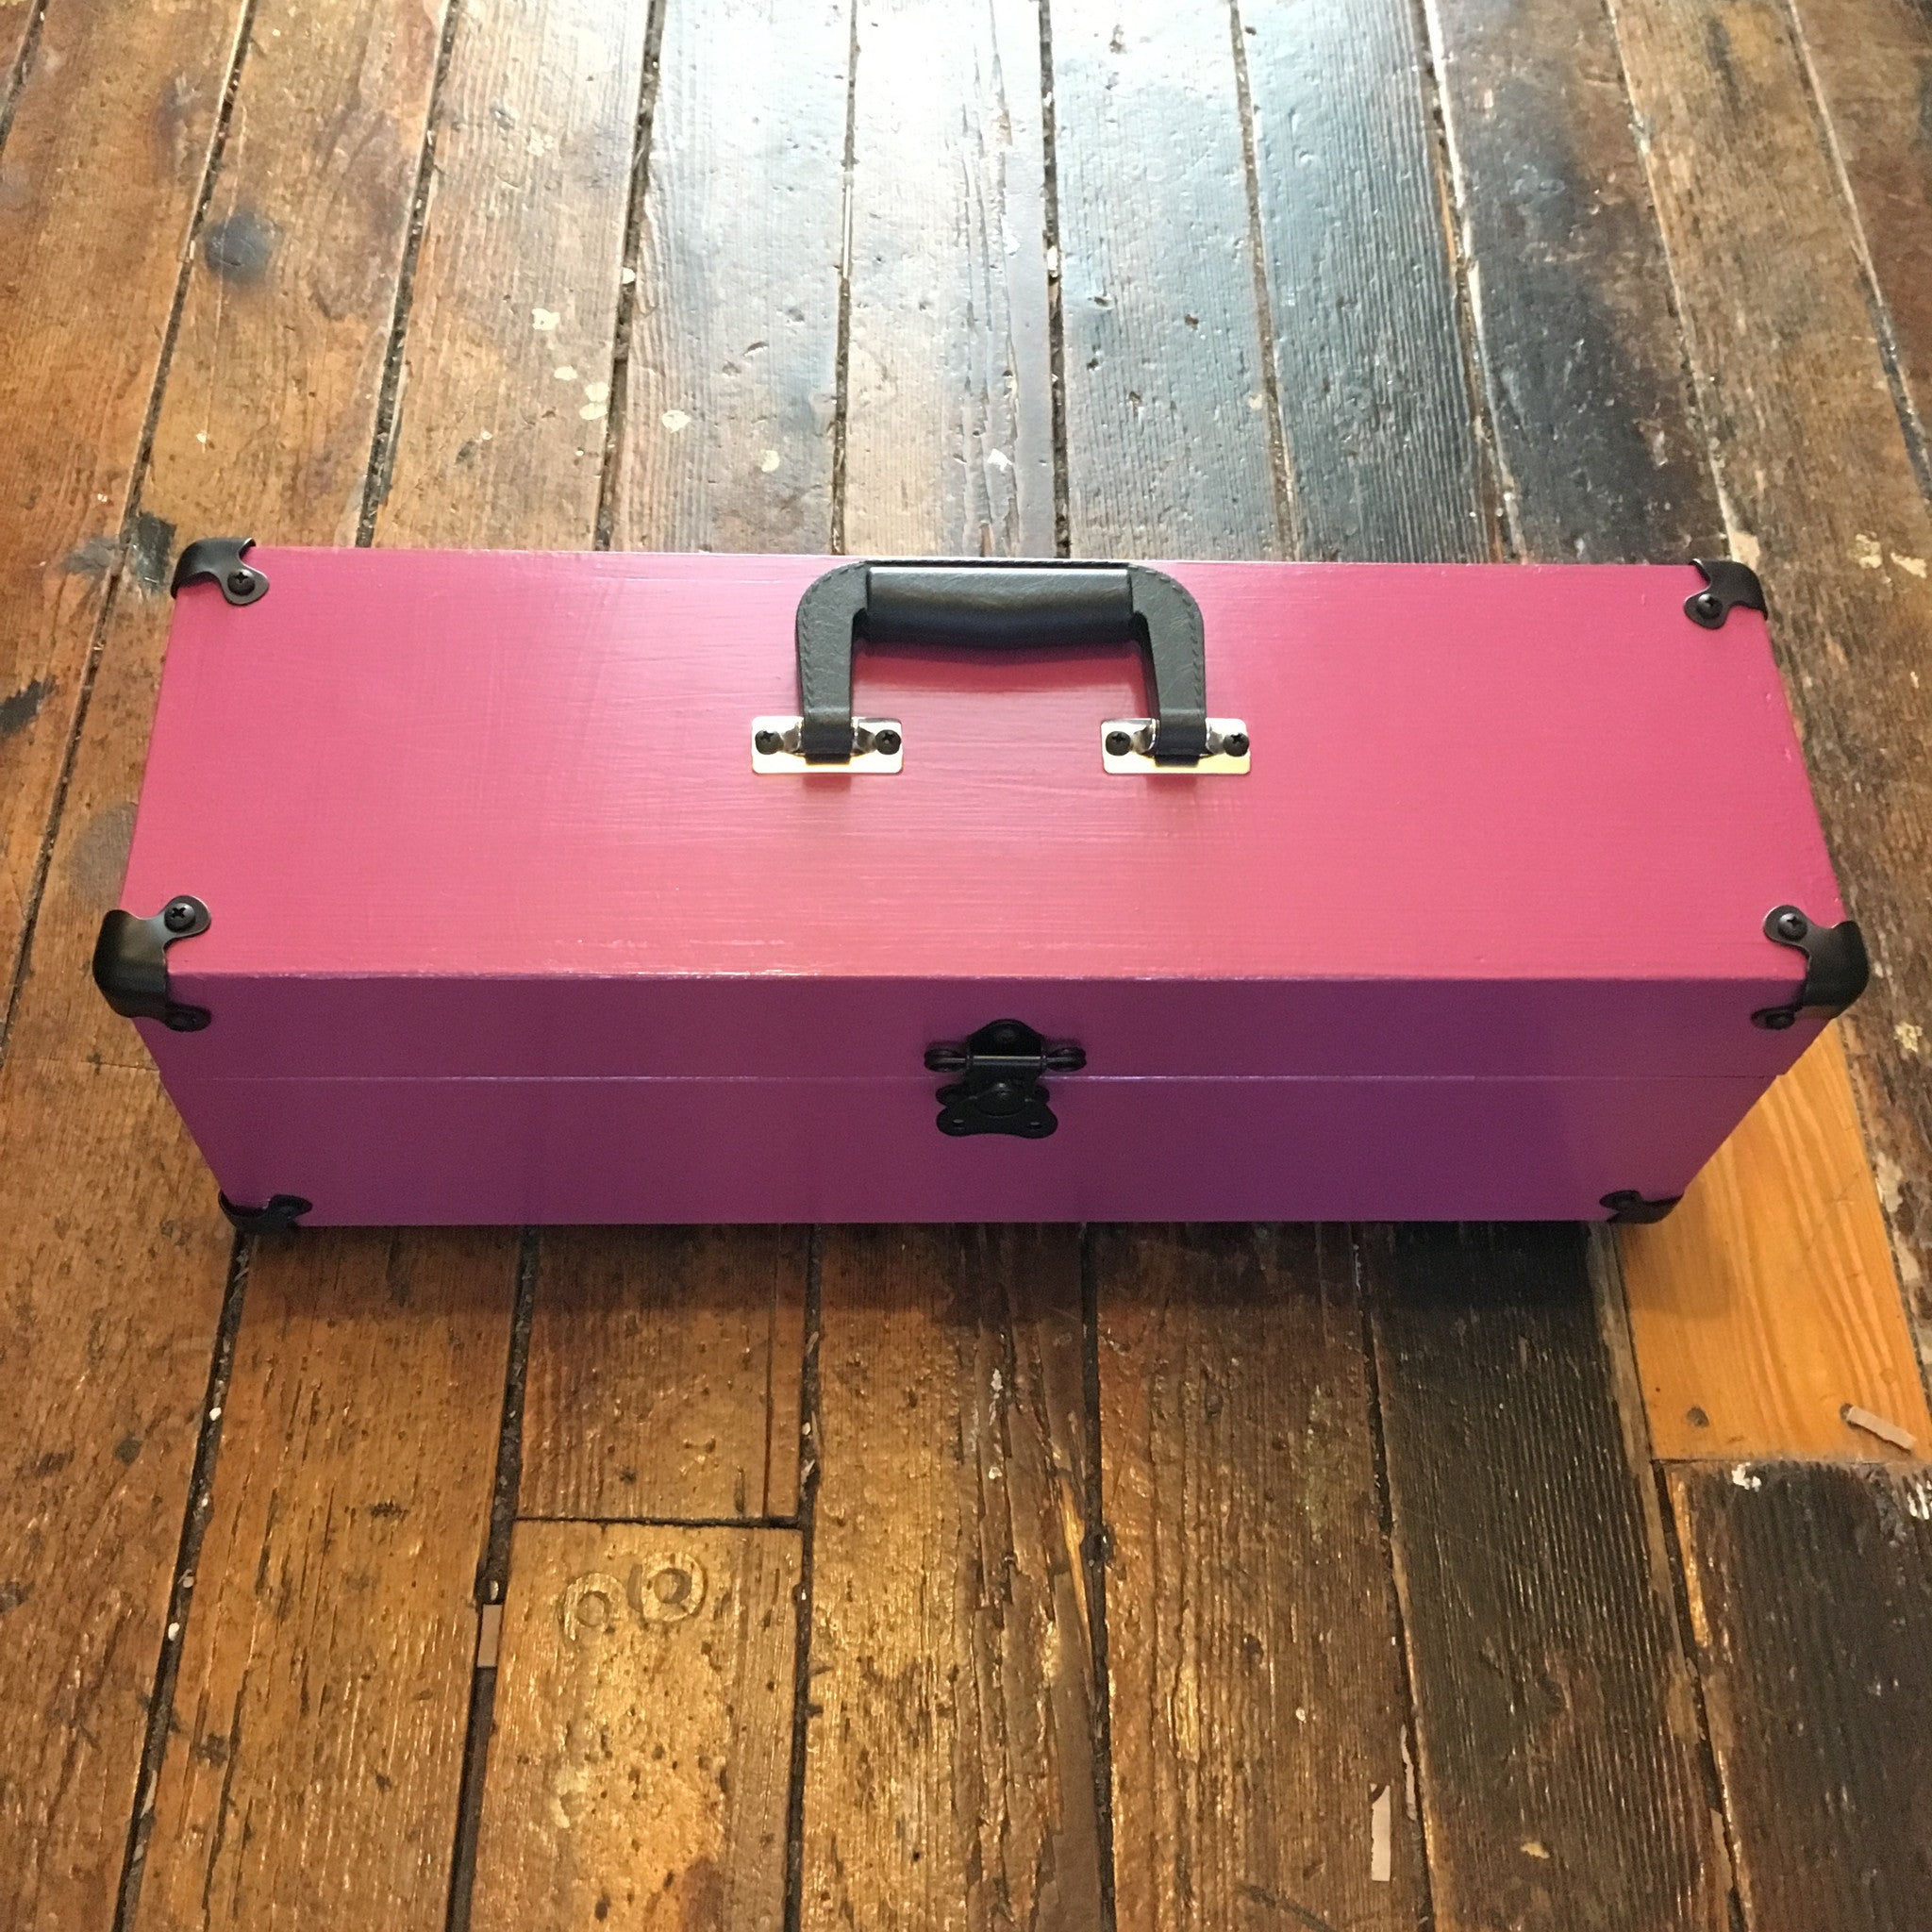 DIY Closable Case for Happy Ending Kit (Pink)